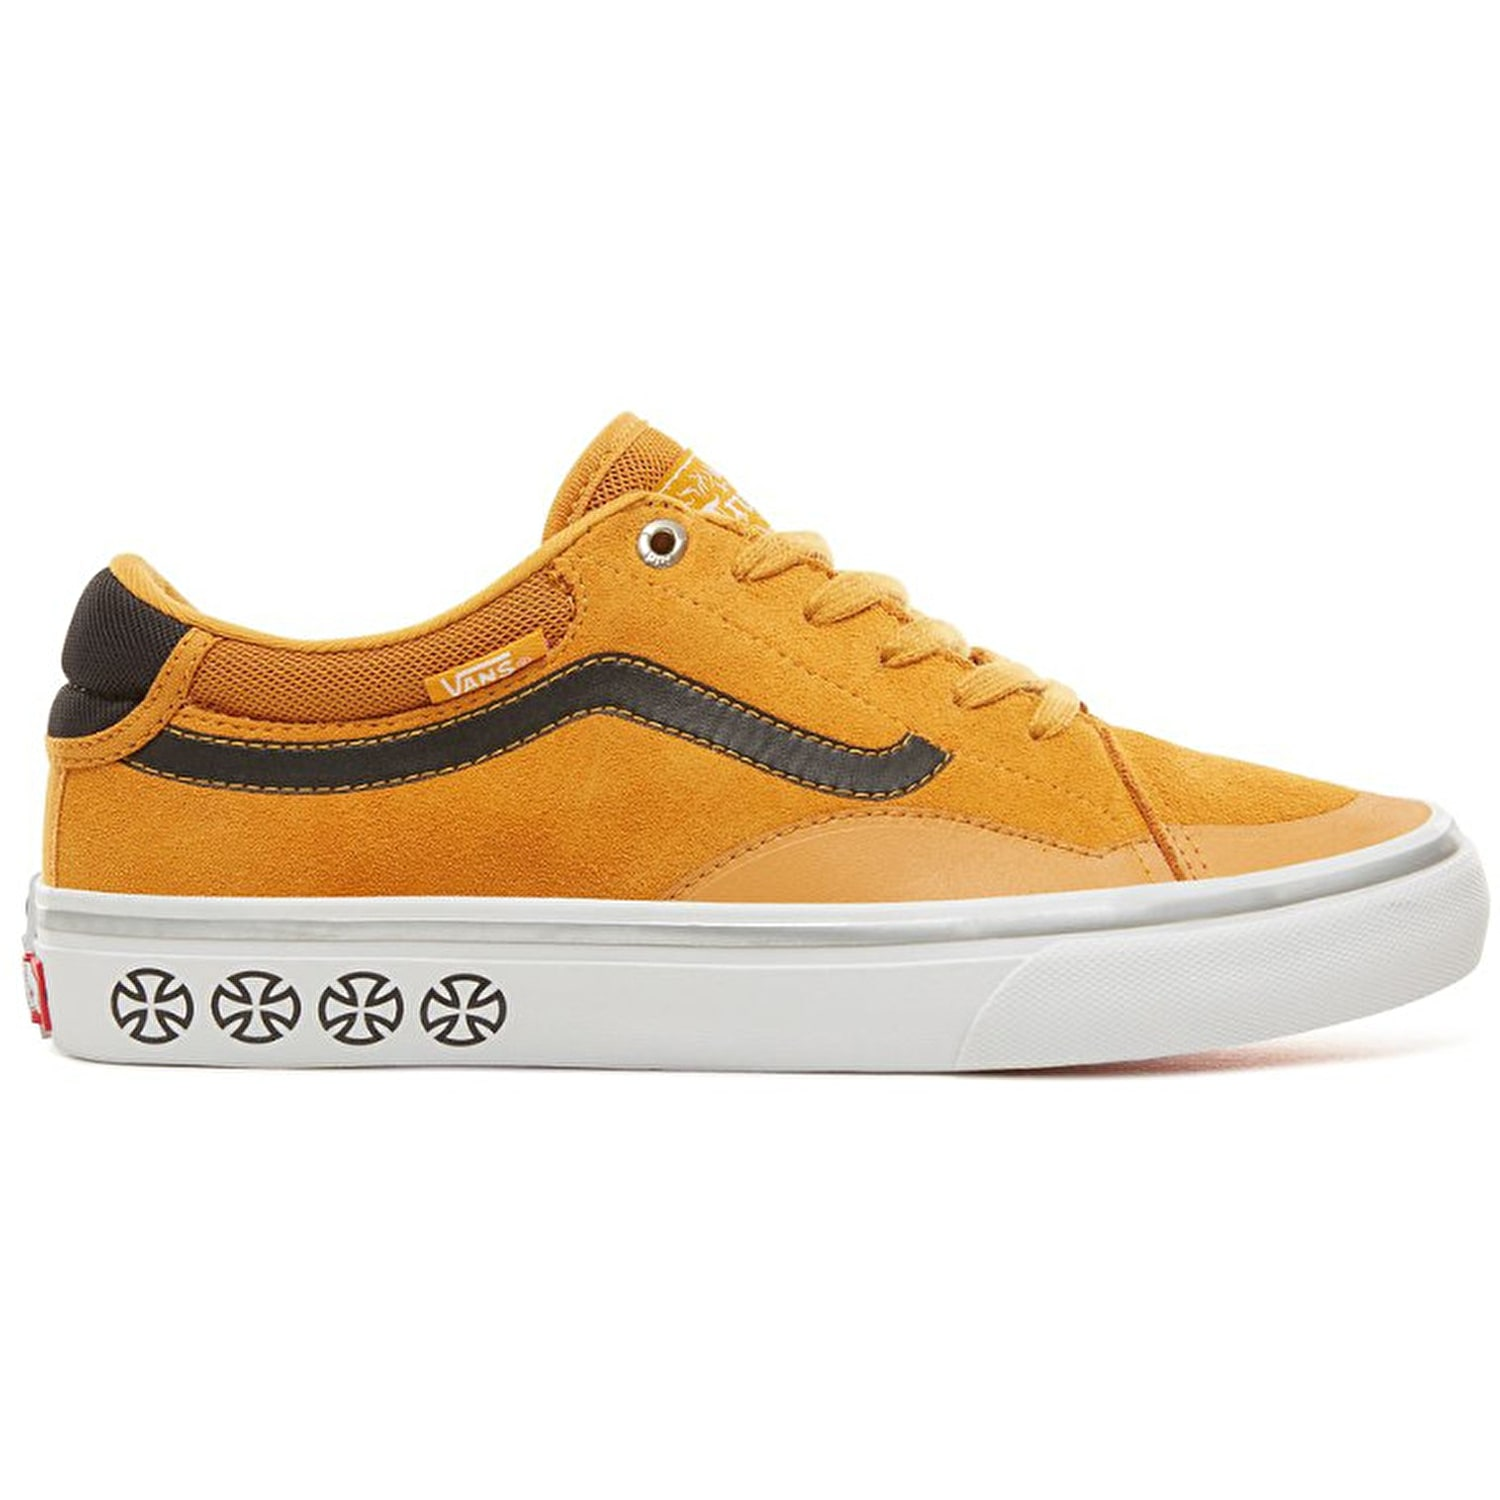 612e056468 Vans TNT Advanced Prototype Skate Shoes - (Independent) Sunflower